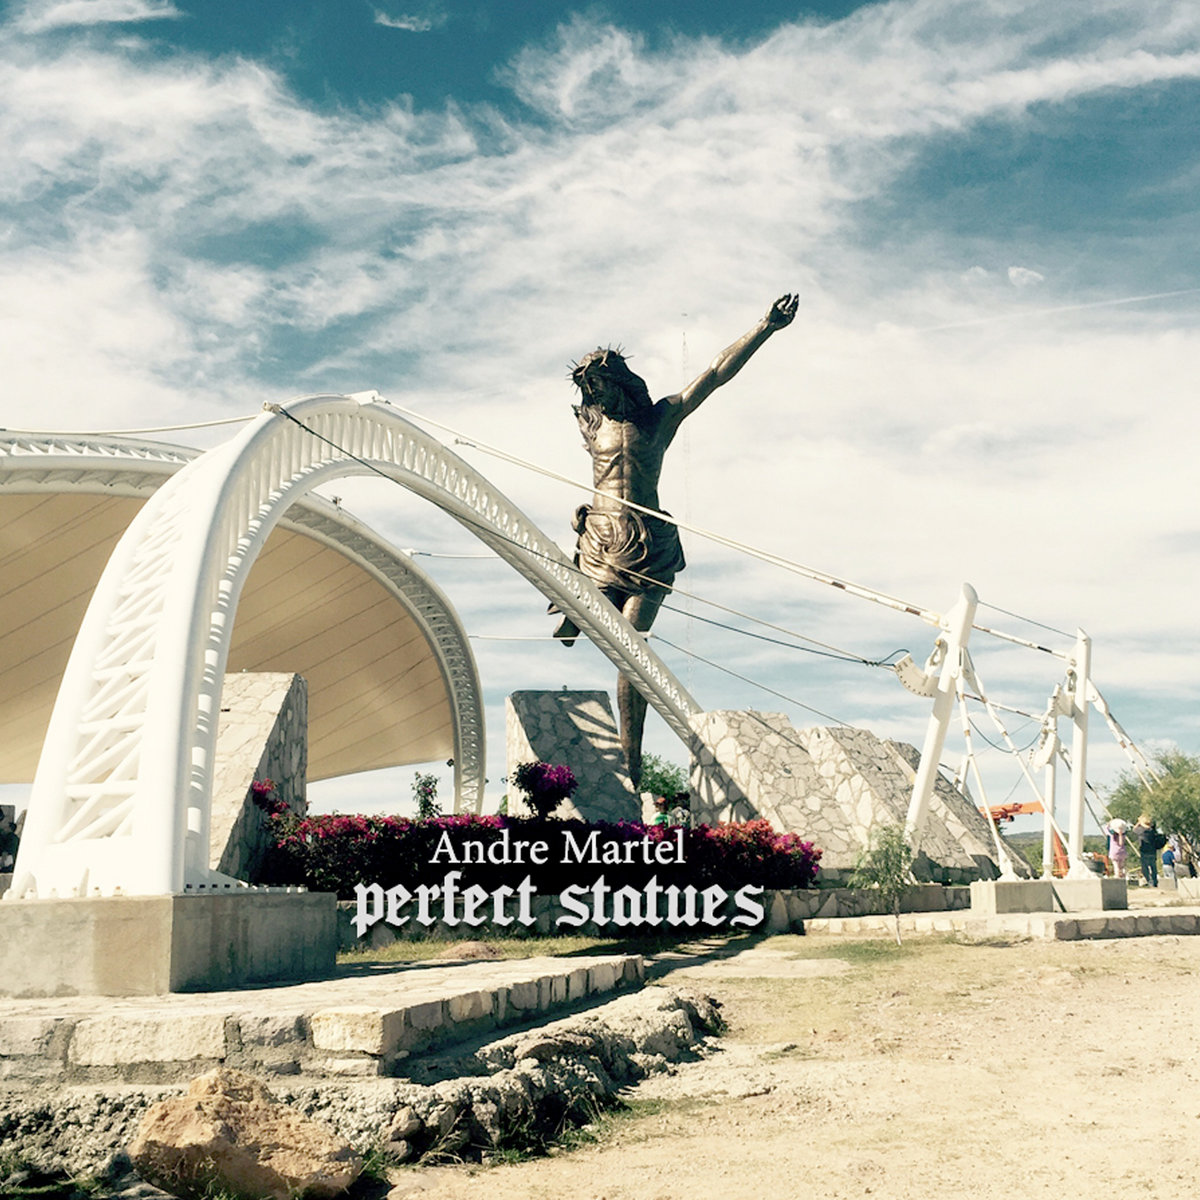 From Perfect Statues By Andre Martel